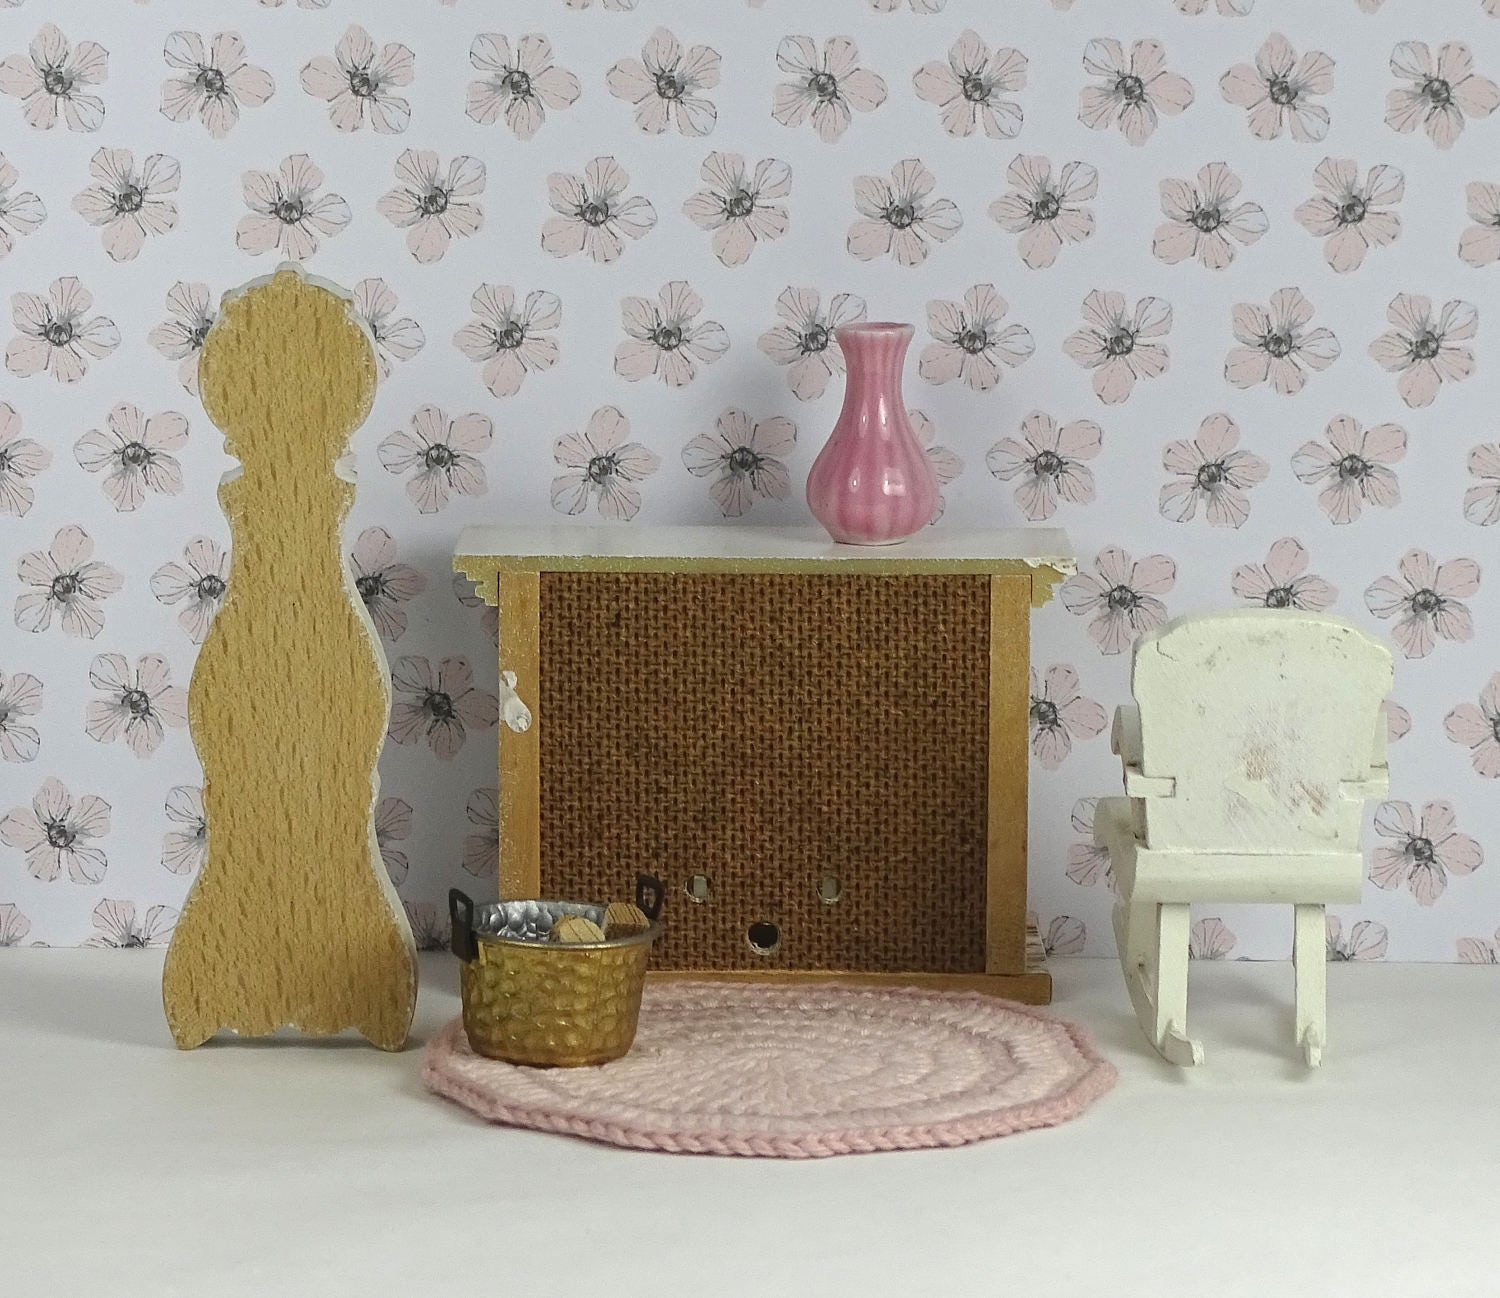 doll house vintage lundby living room fireplace set 1960s 1980s